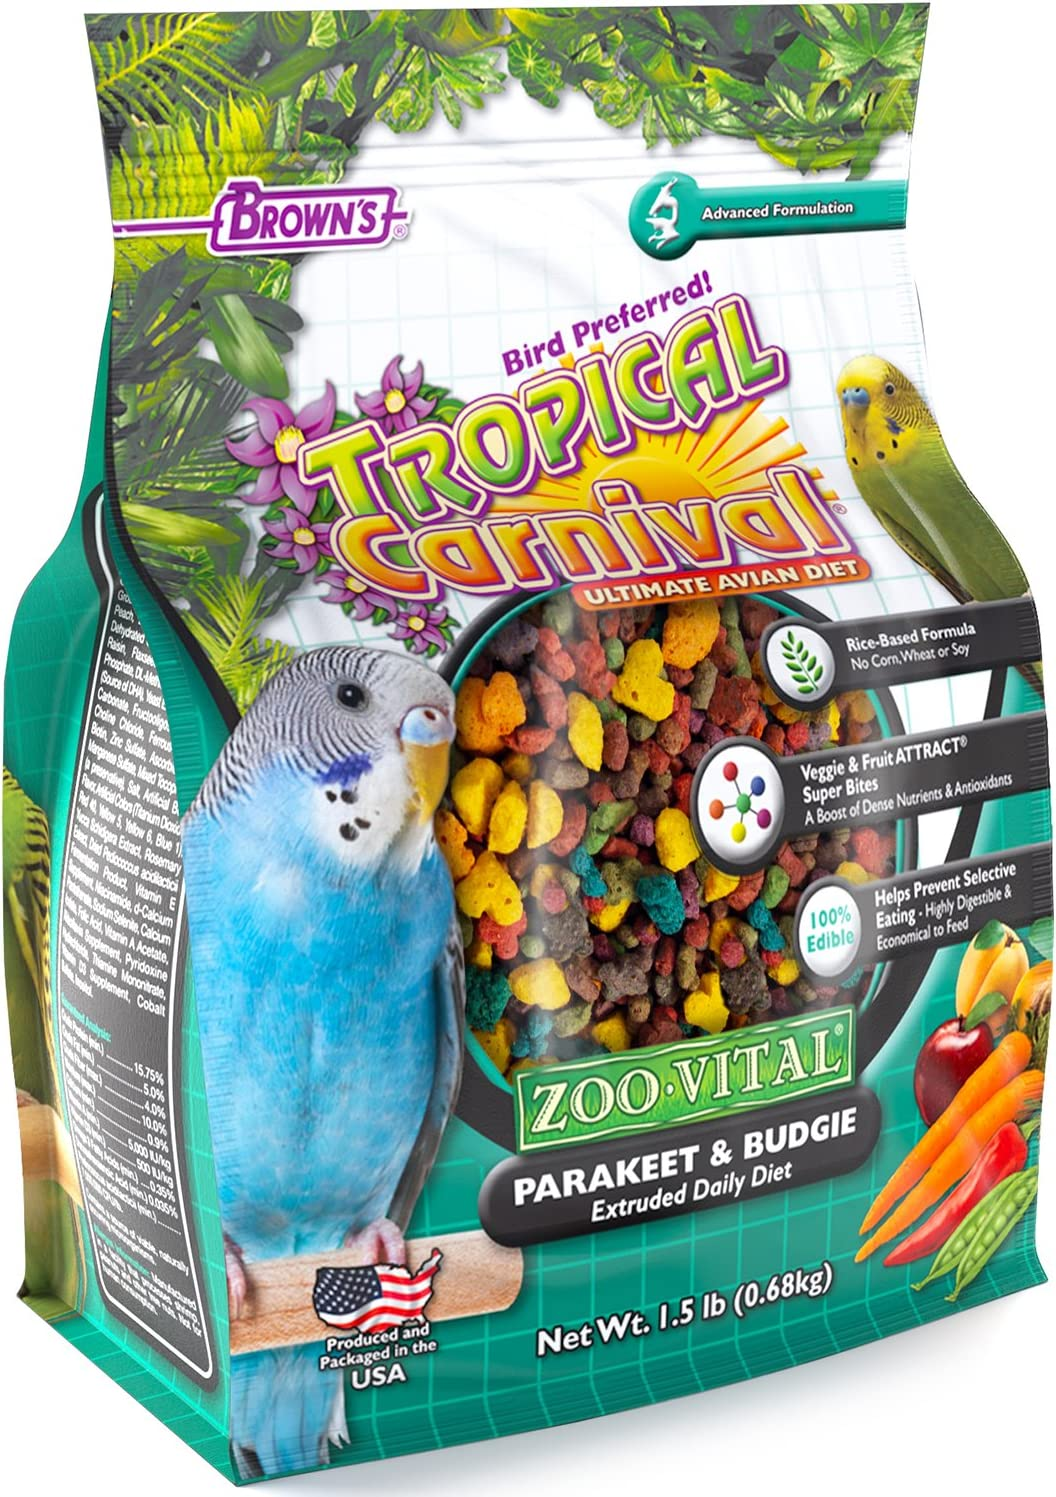 F.M. Brown's Tropical Carnival Zoo-Vital Parakeet & Budgie Pellet Daily Diet with with Probiotics for Healthy Digestion, Grain-Free, Rice-Based Formula, 100% Edible, Prevents Selective Eating